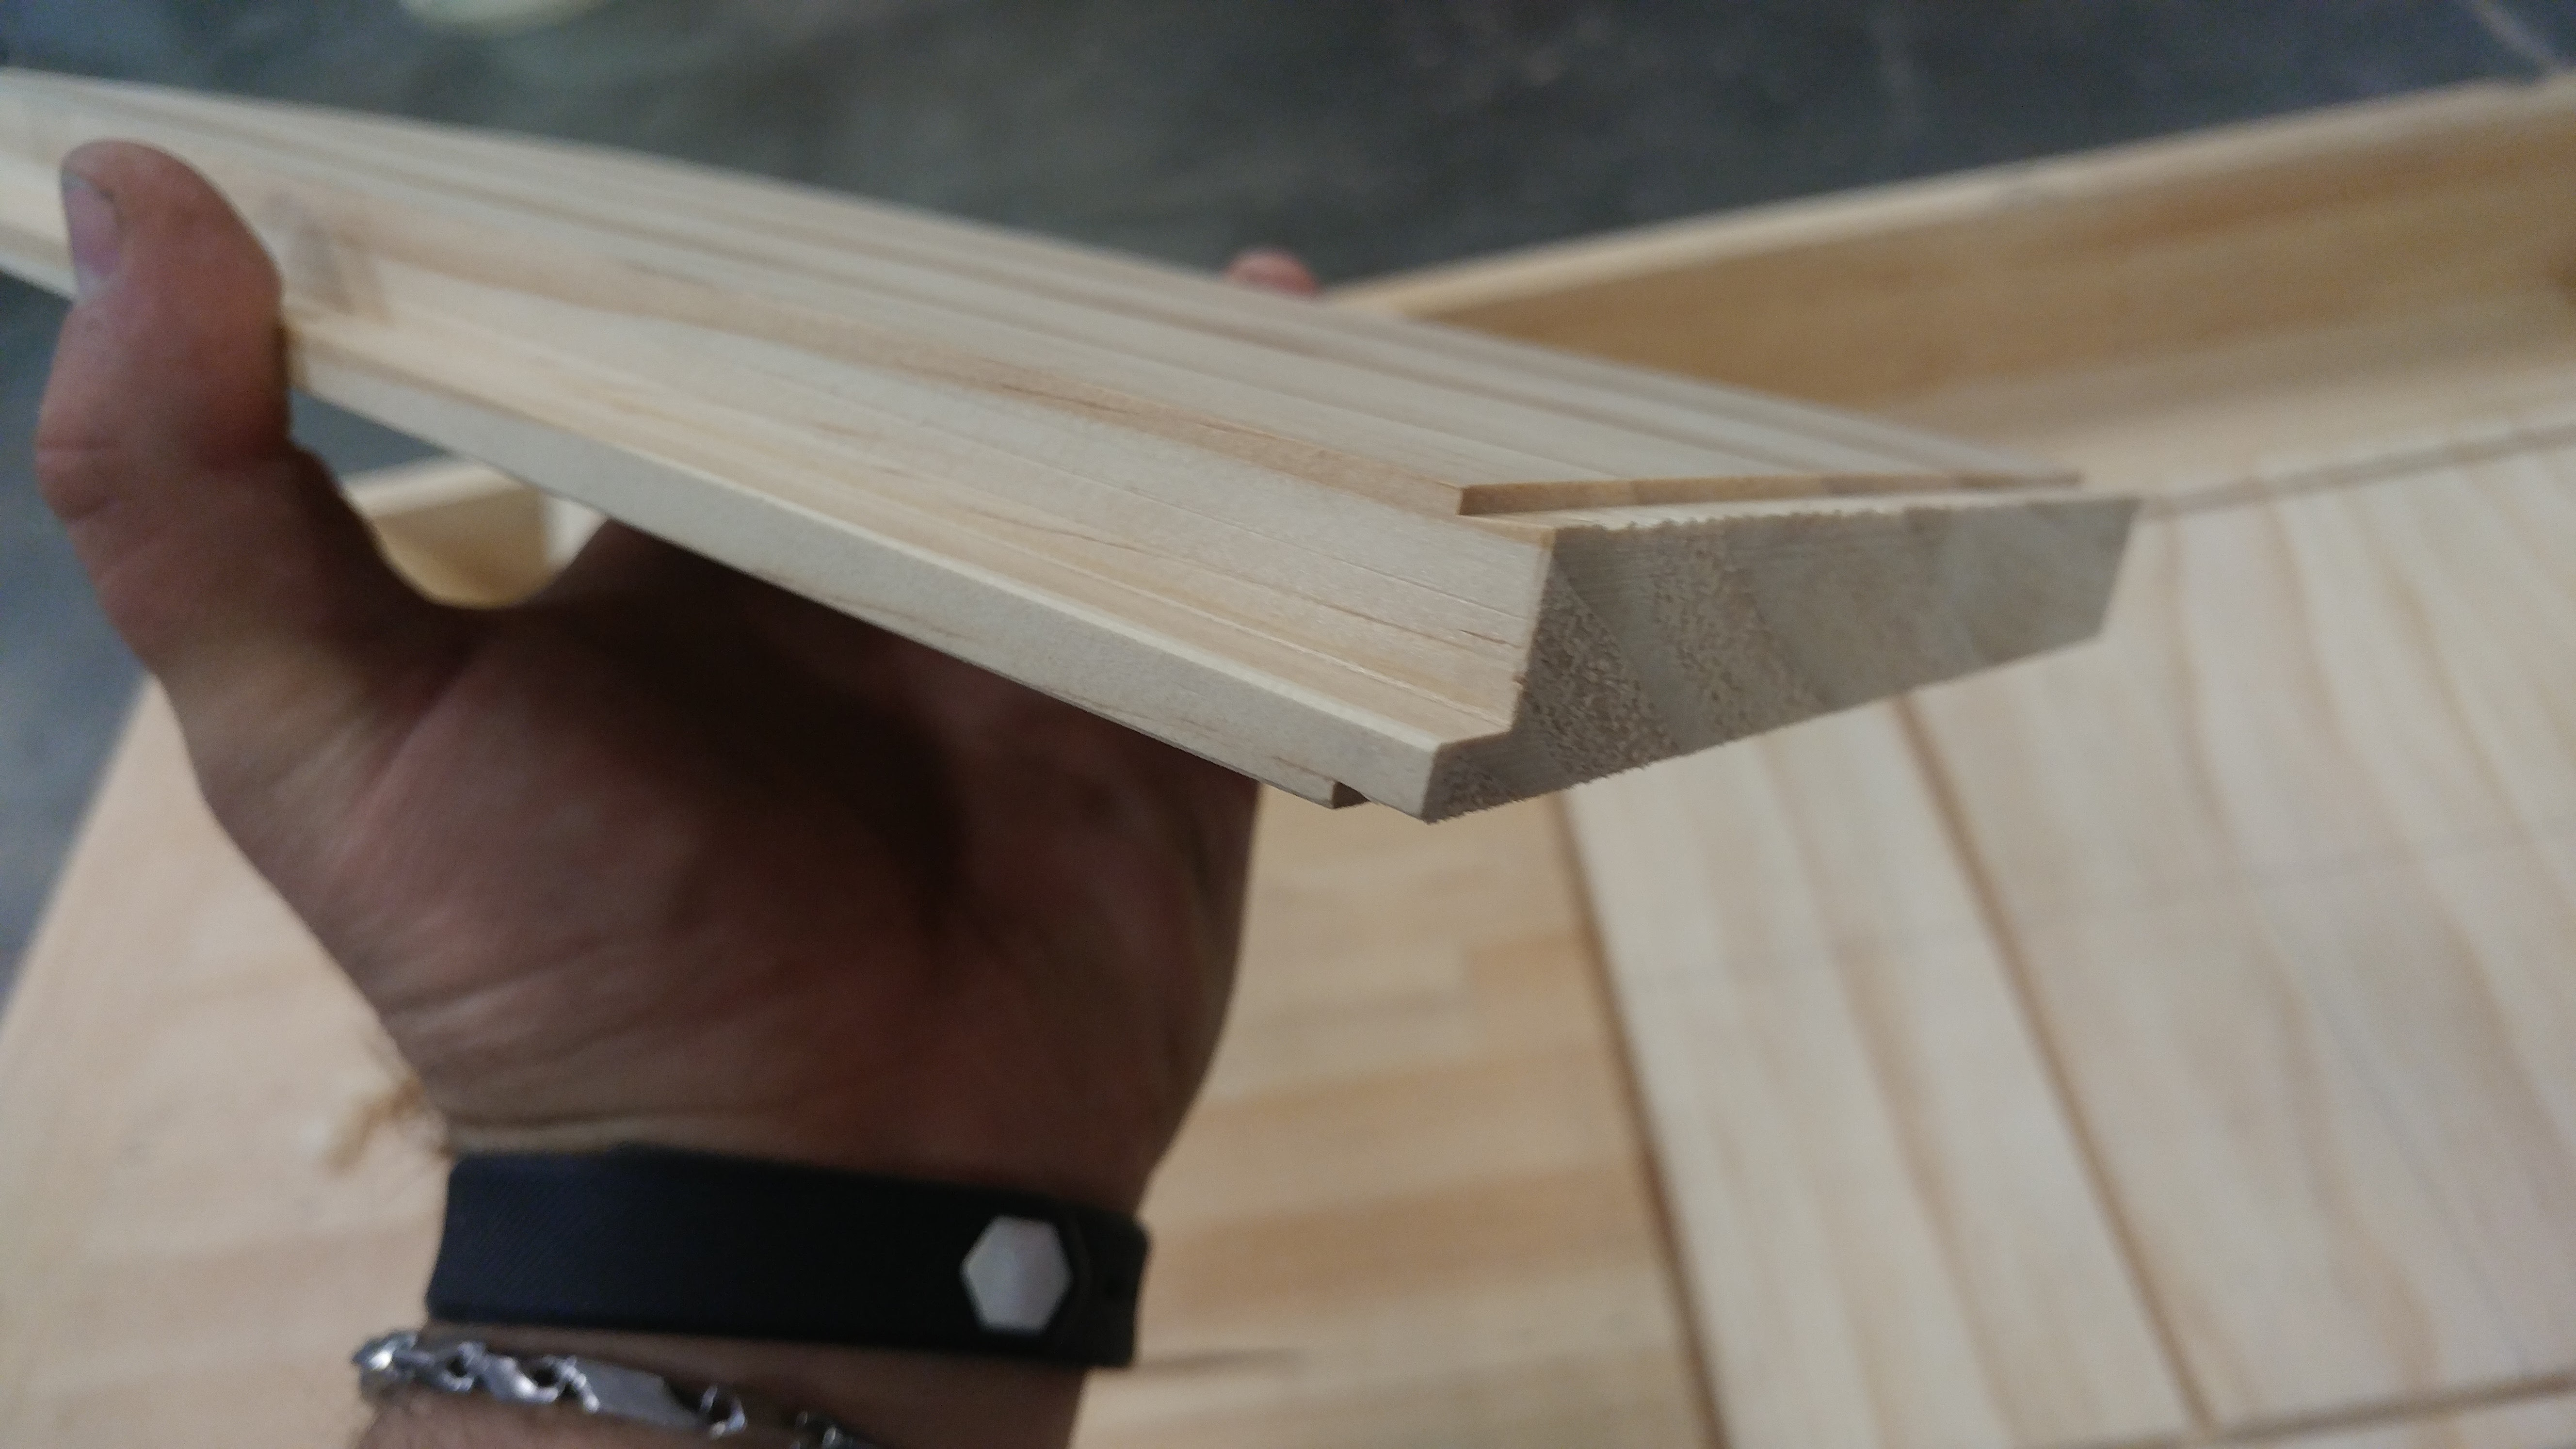 detail of the joinery on the box ends